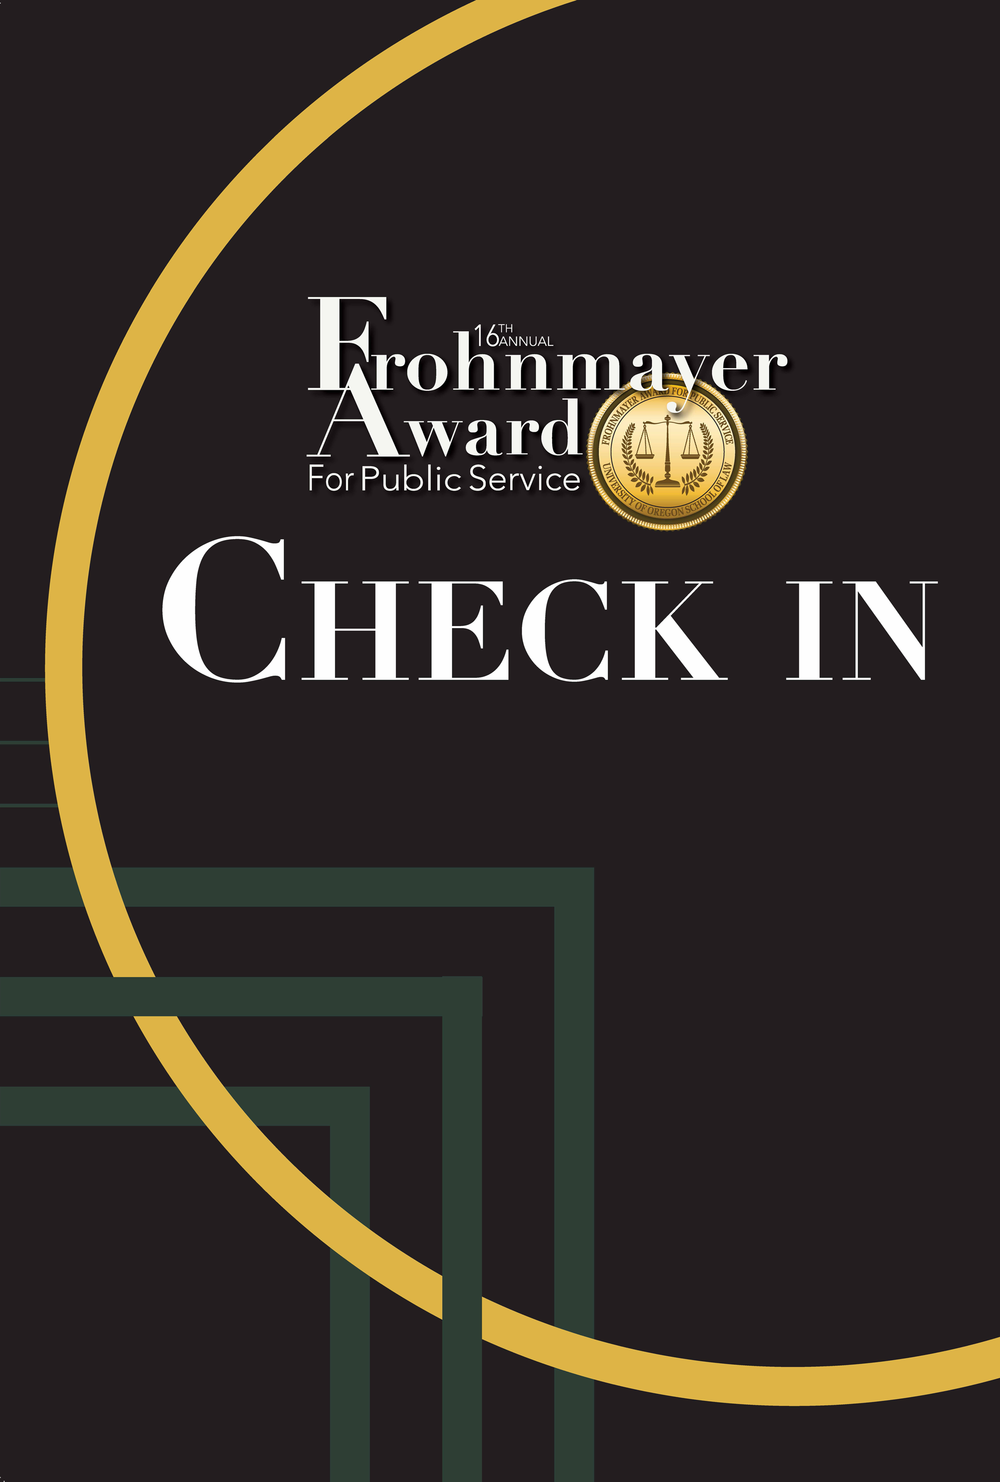 Frohnmayer Check In Sign